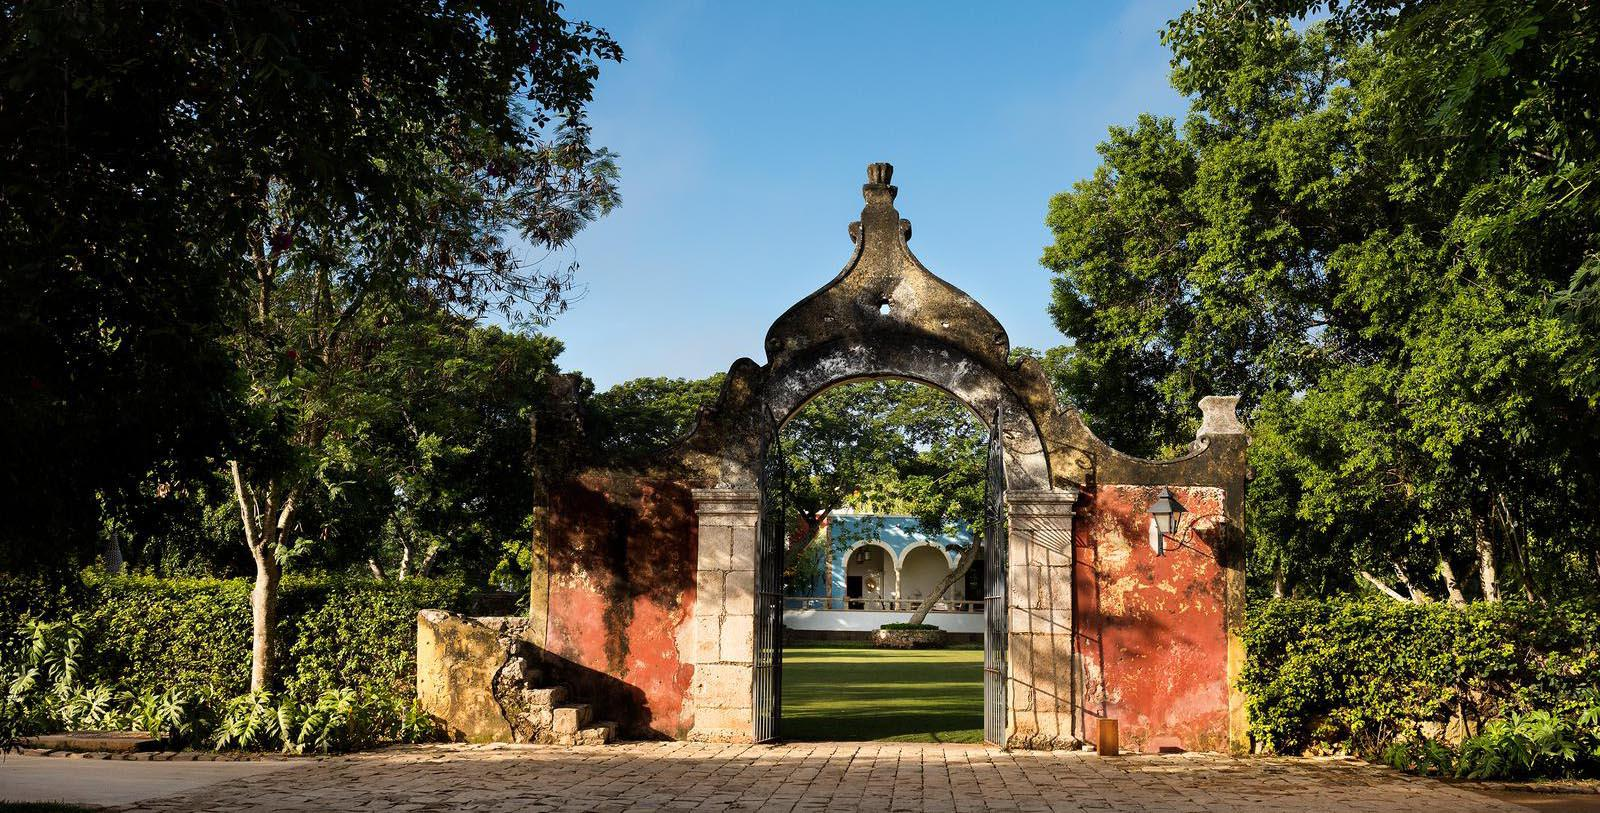 Image of hotel exterior gate Chablé Resort & Spa, 1650, Member of Historic Hotels Worldwide, in Chocholá, Mexico, Discover